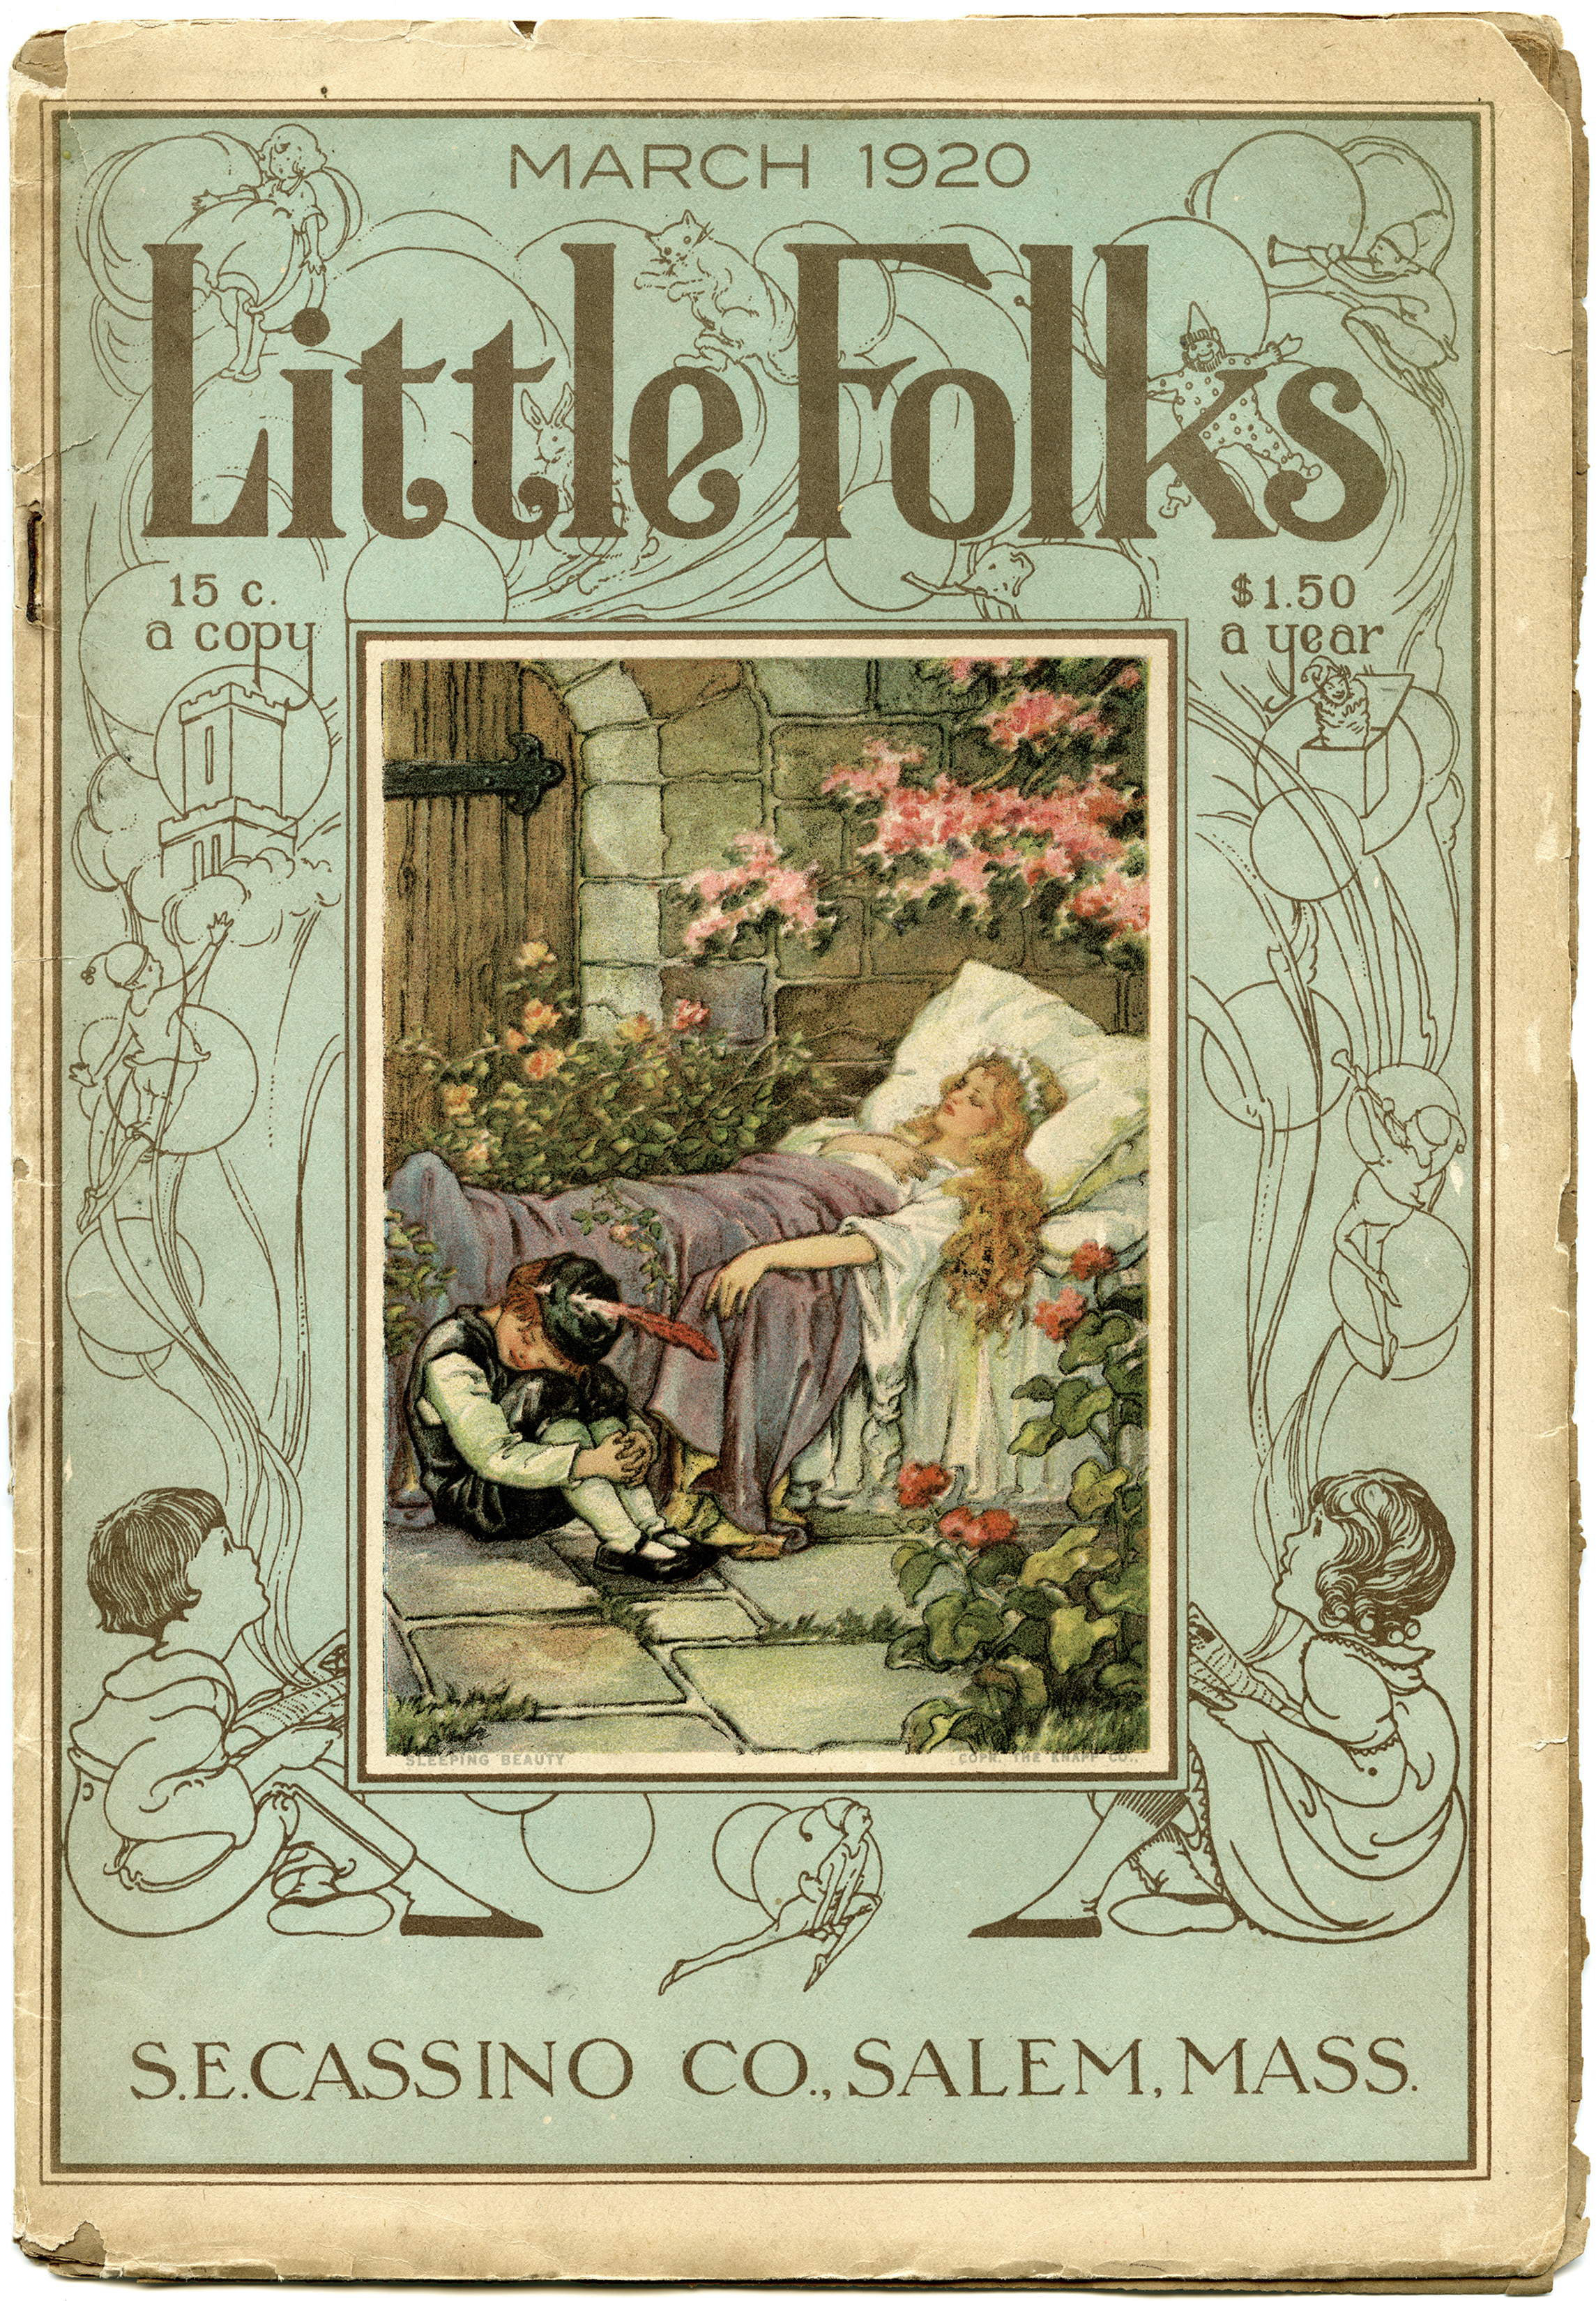 Public Domain Book Cover Art : Little folks march front cover free vintage